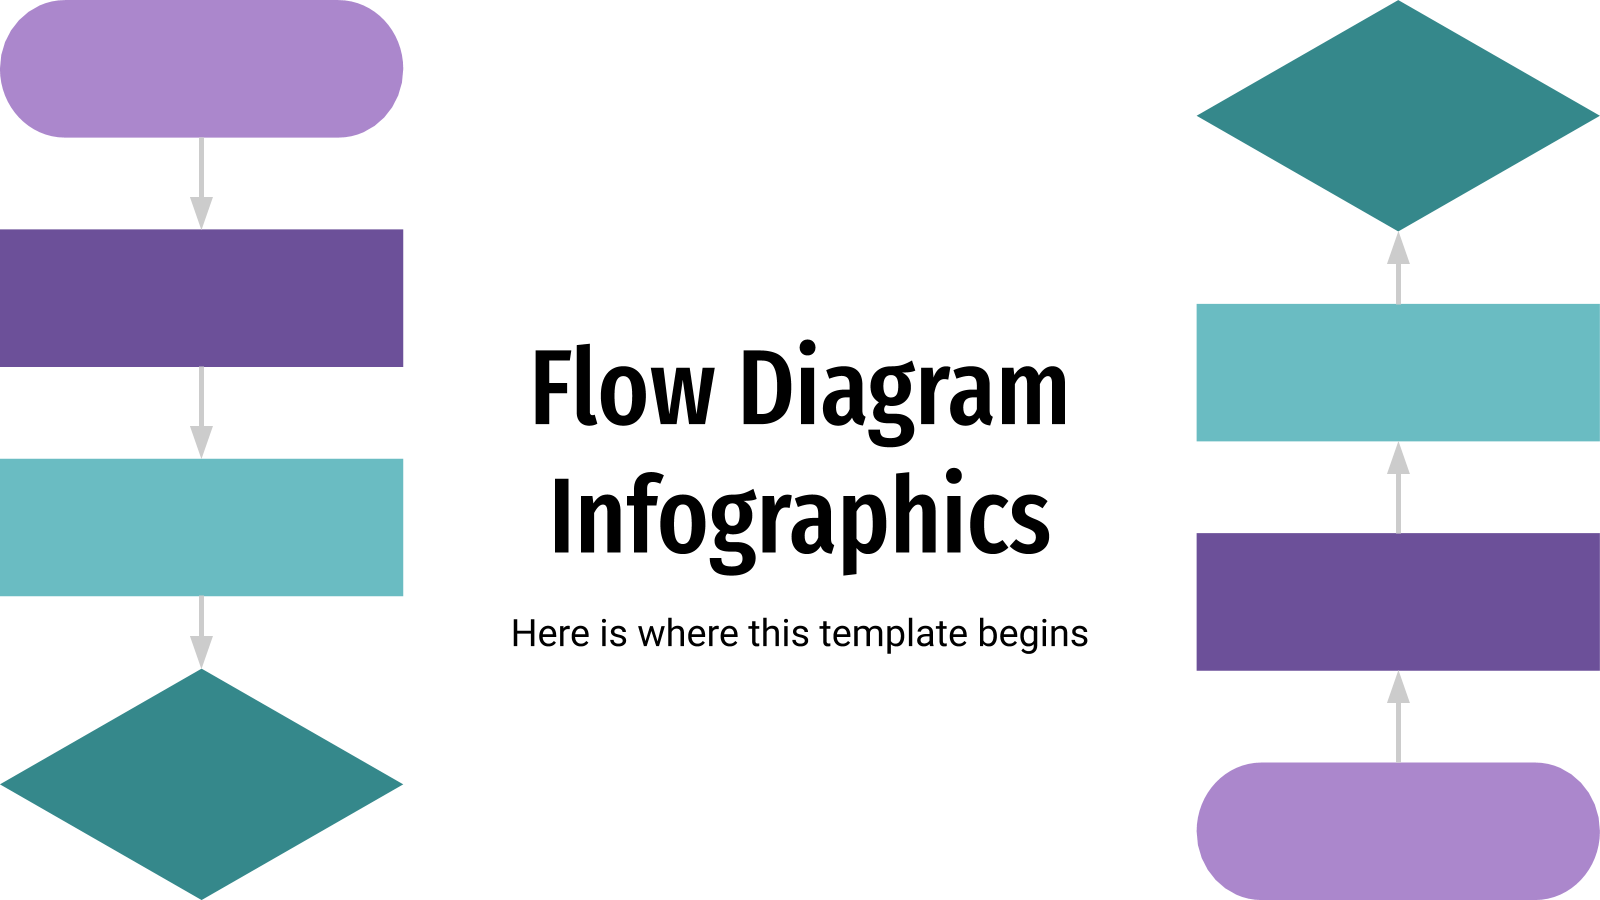 Flow Diagram Infographics presentation template